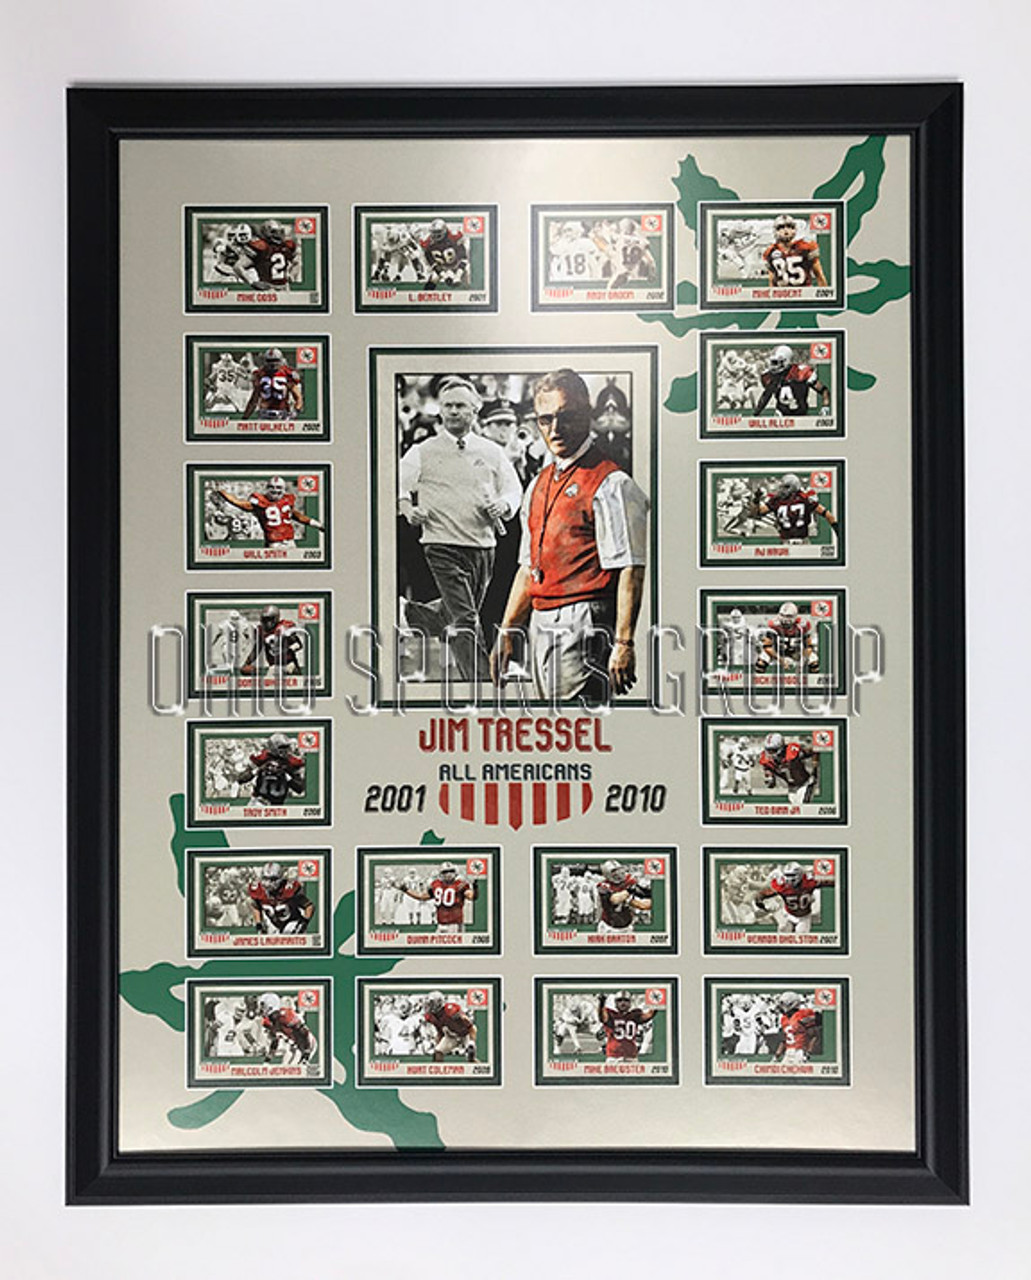 All-Americans Collection - Jim Tressel